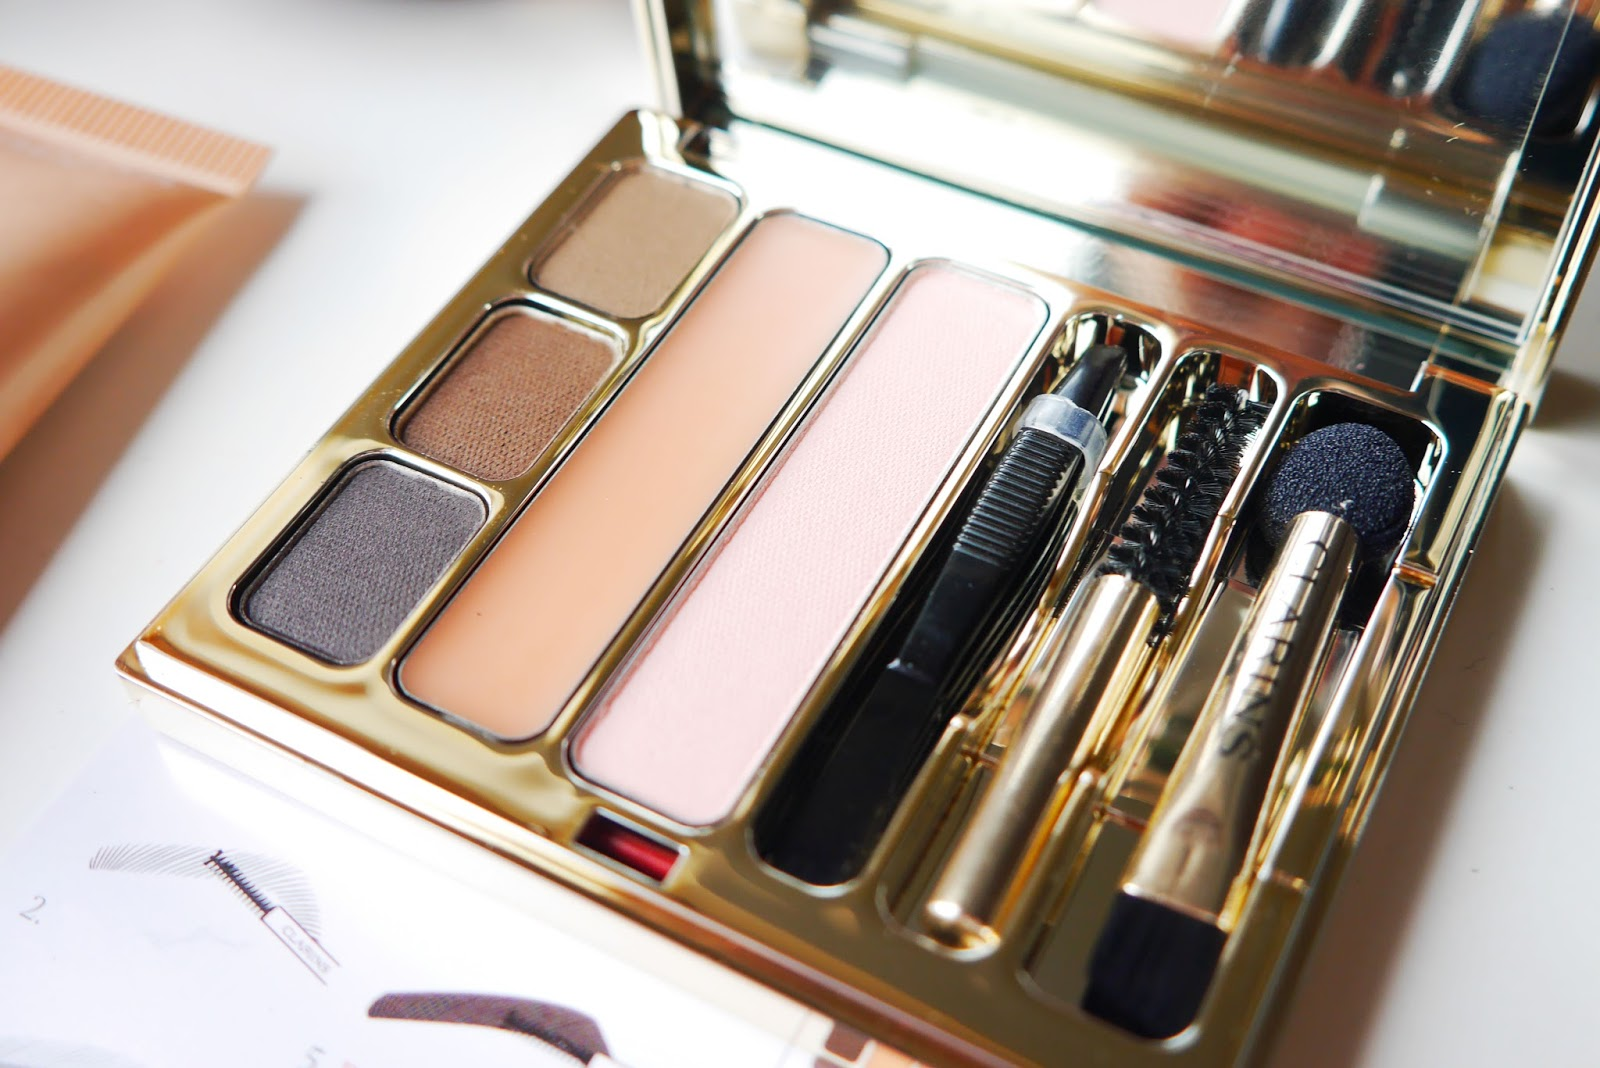 clarins brow and eye palette